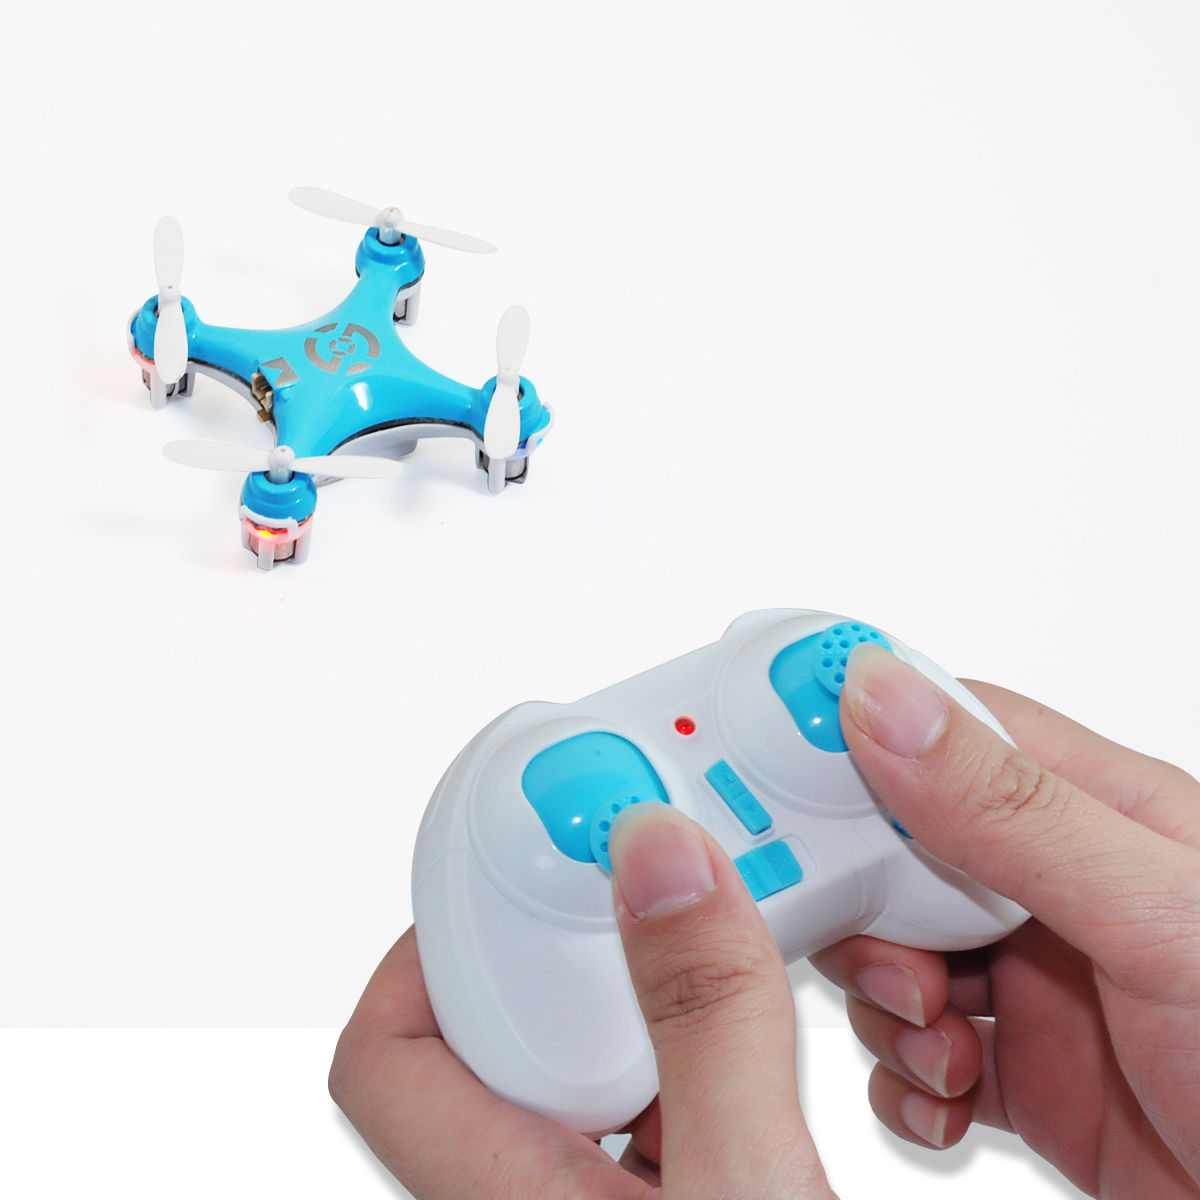 R/C 2.4Ghz nano Quadcopter CX-10 with 6Axis GYRO